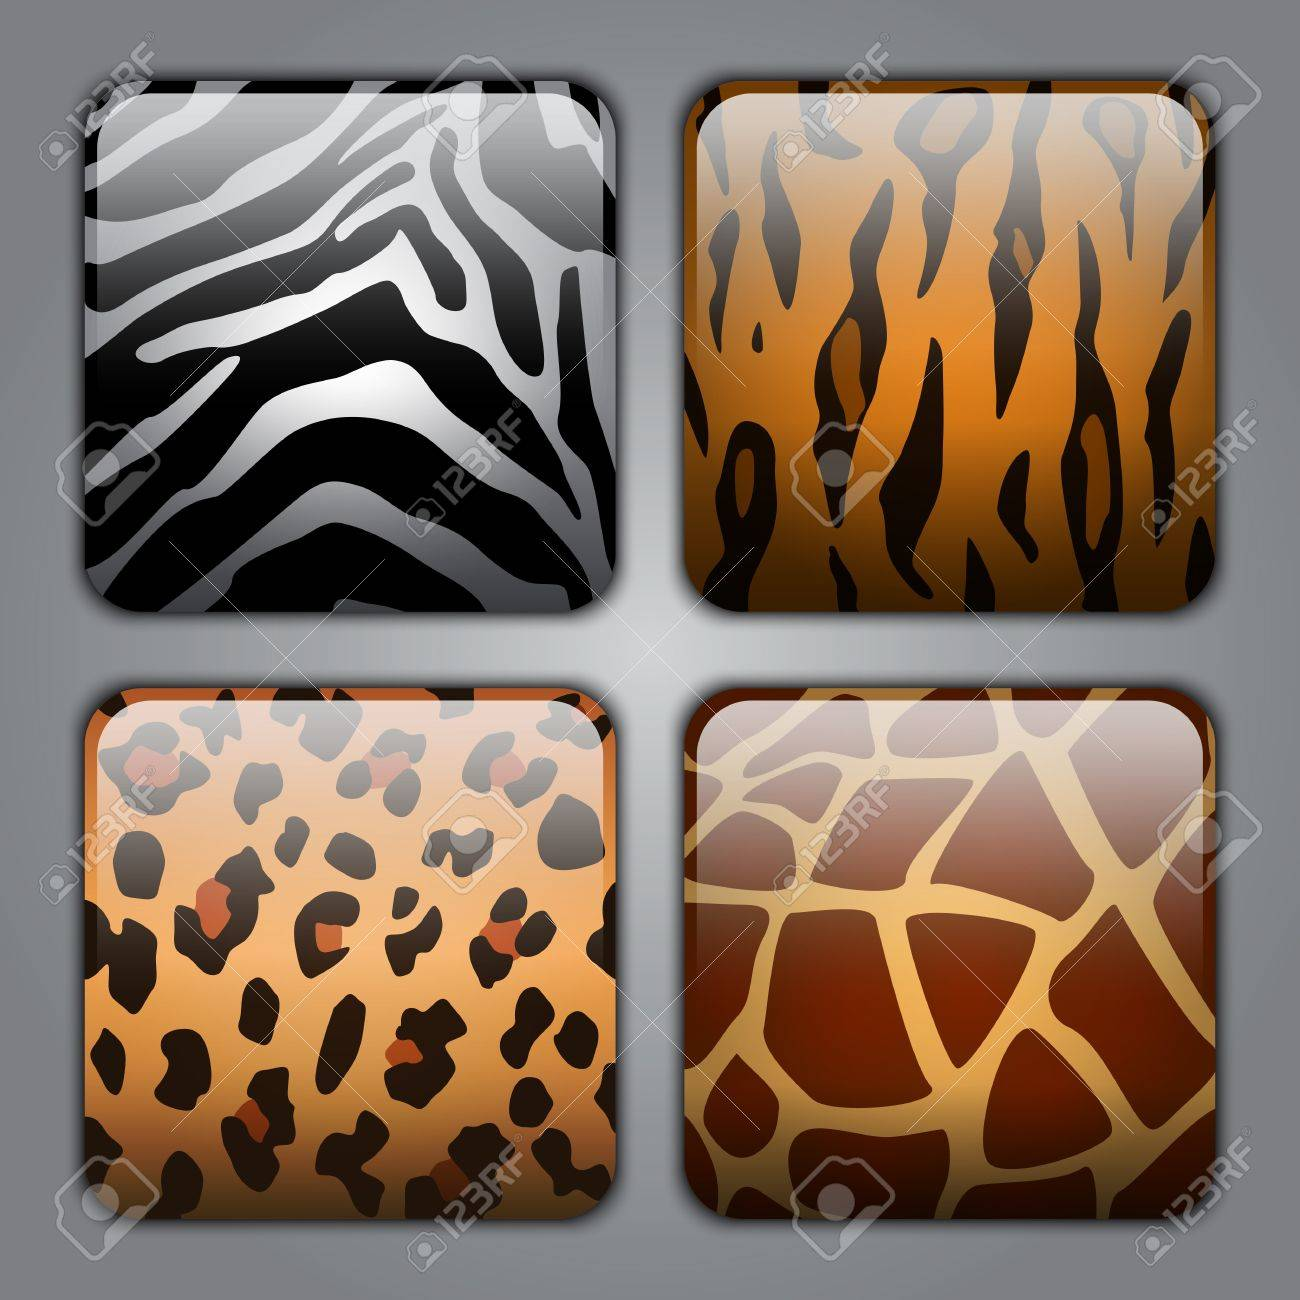 Set of icons with different types of wild animal fur textures - 16186596